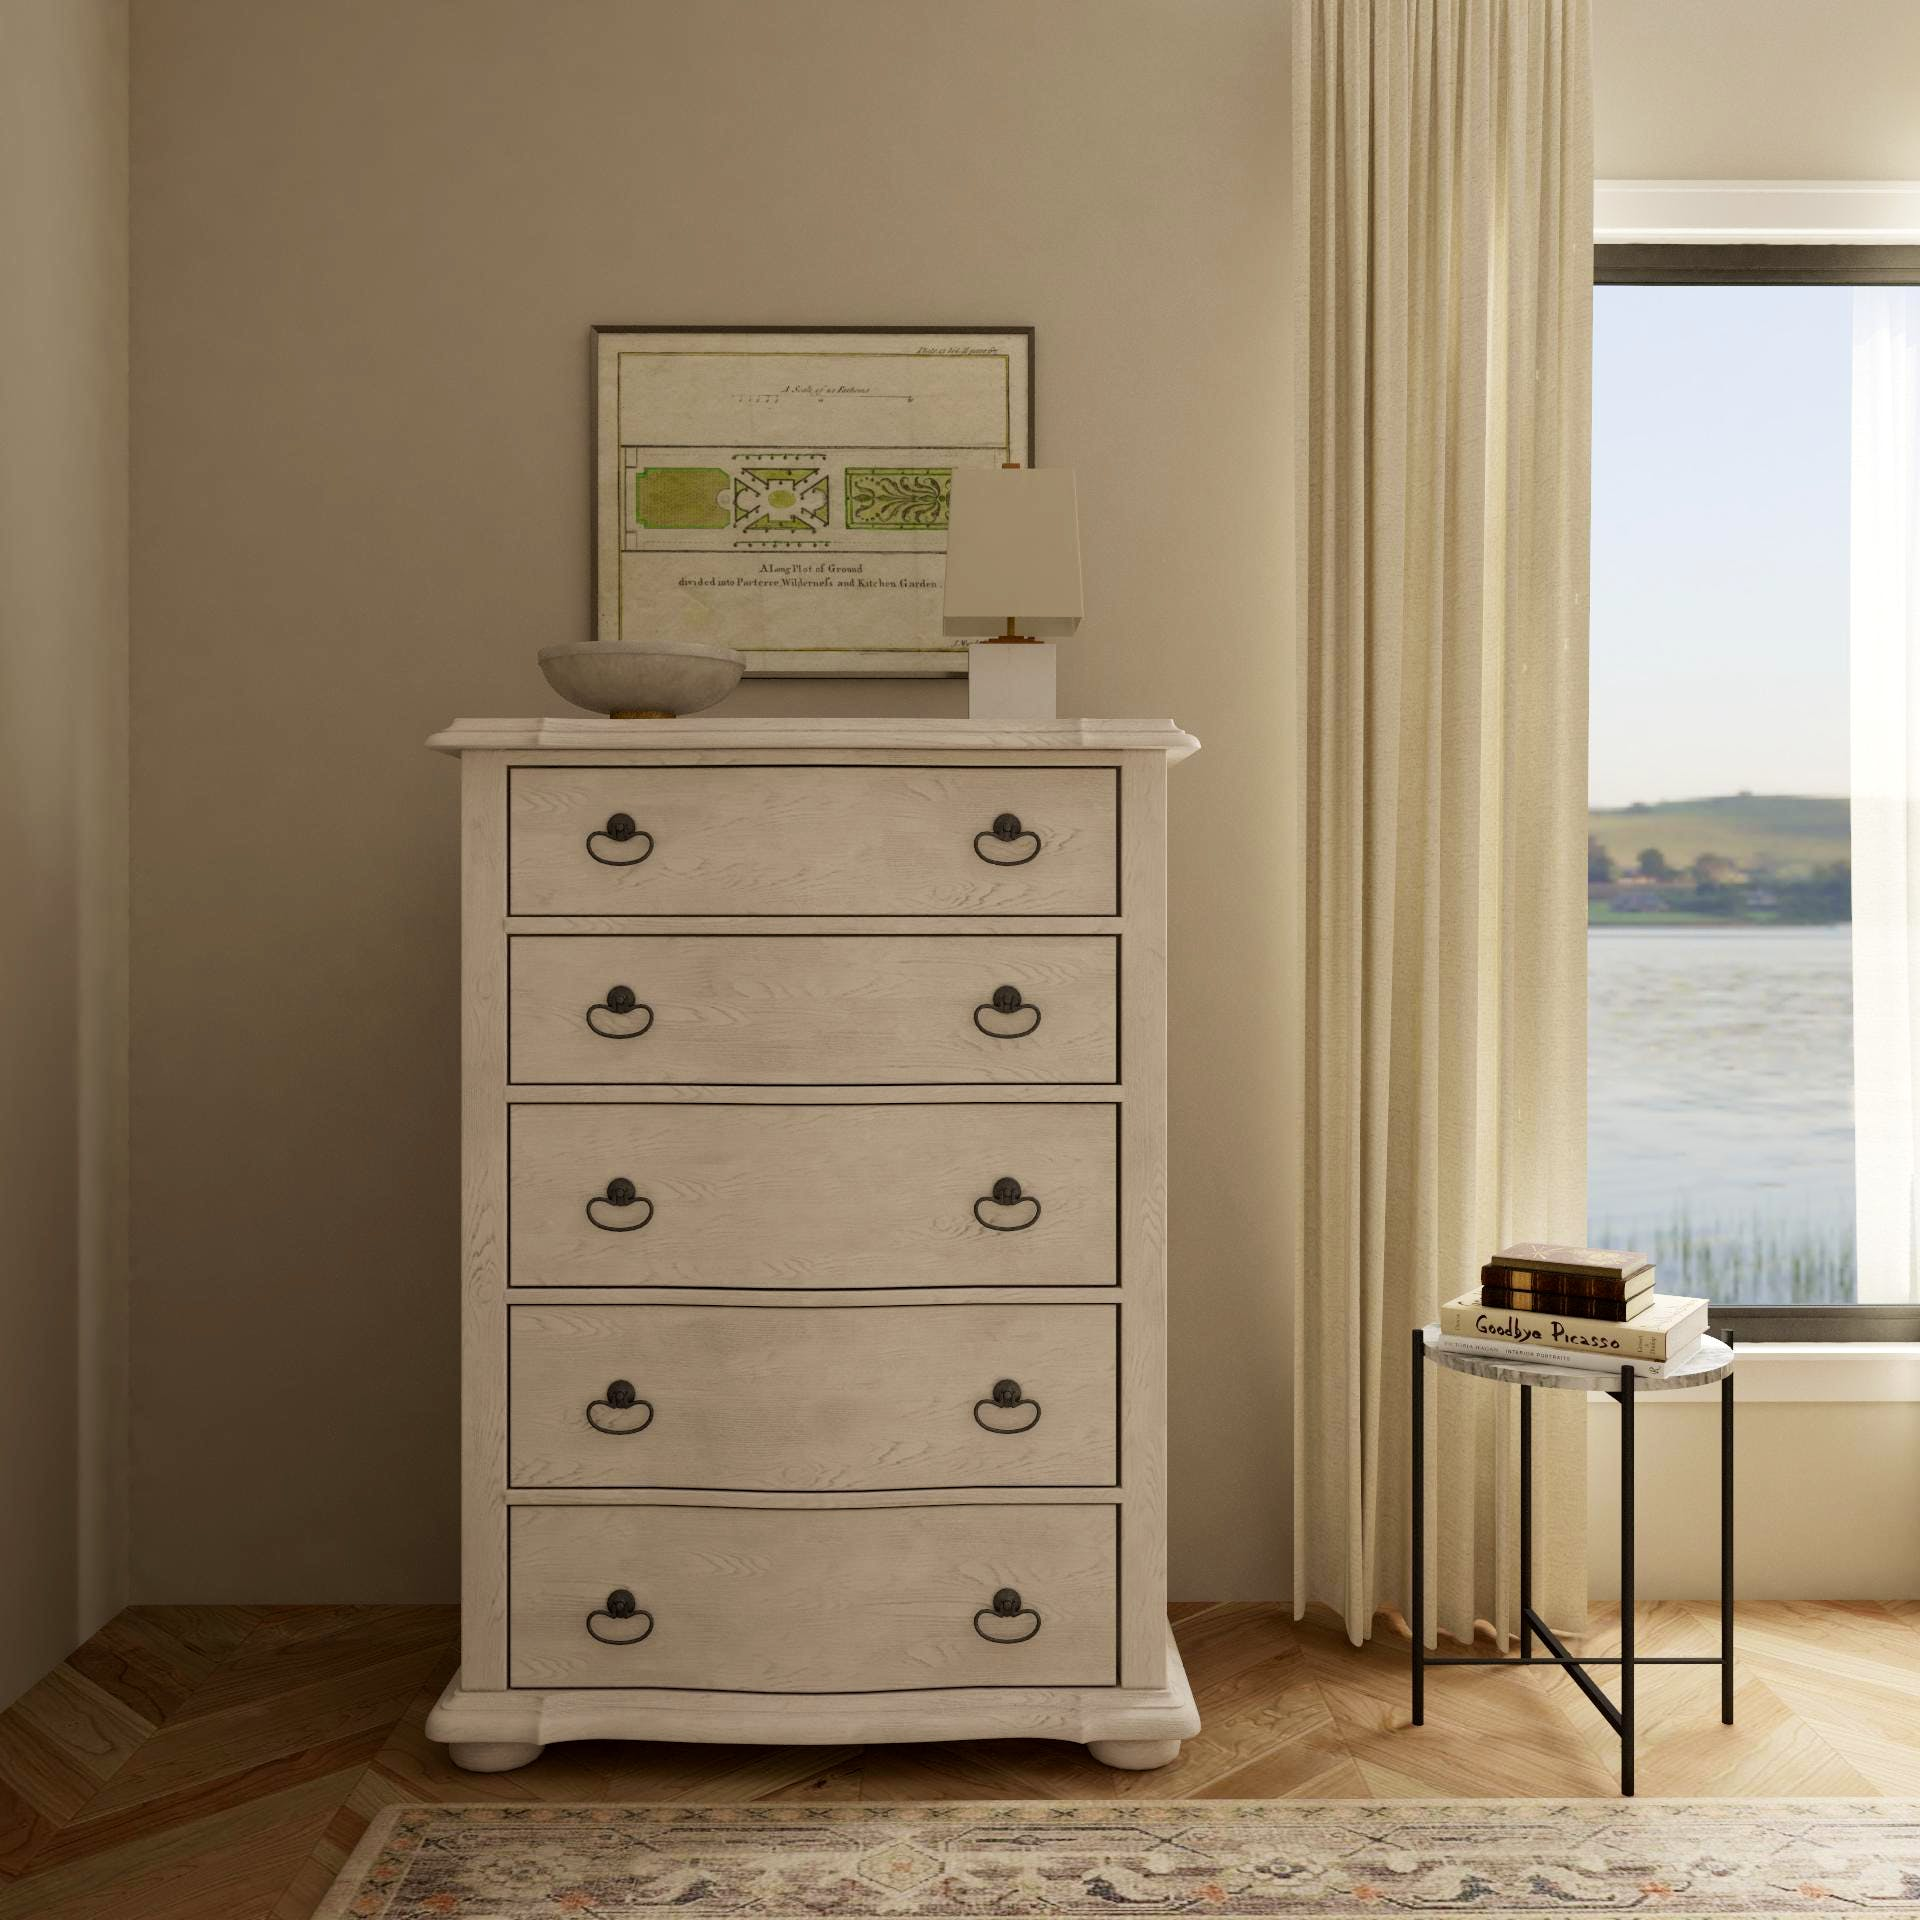 Traditional Dresser in Airy Bedroom With Modern Styling